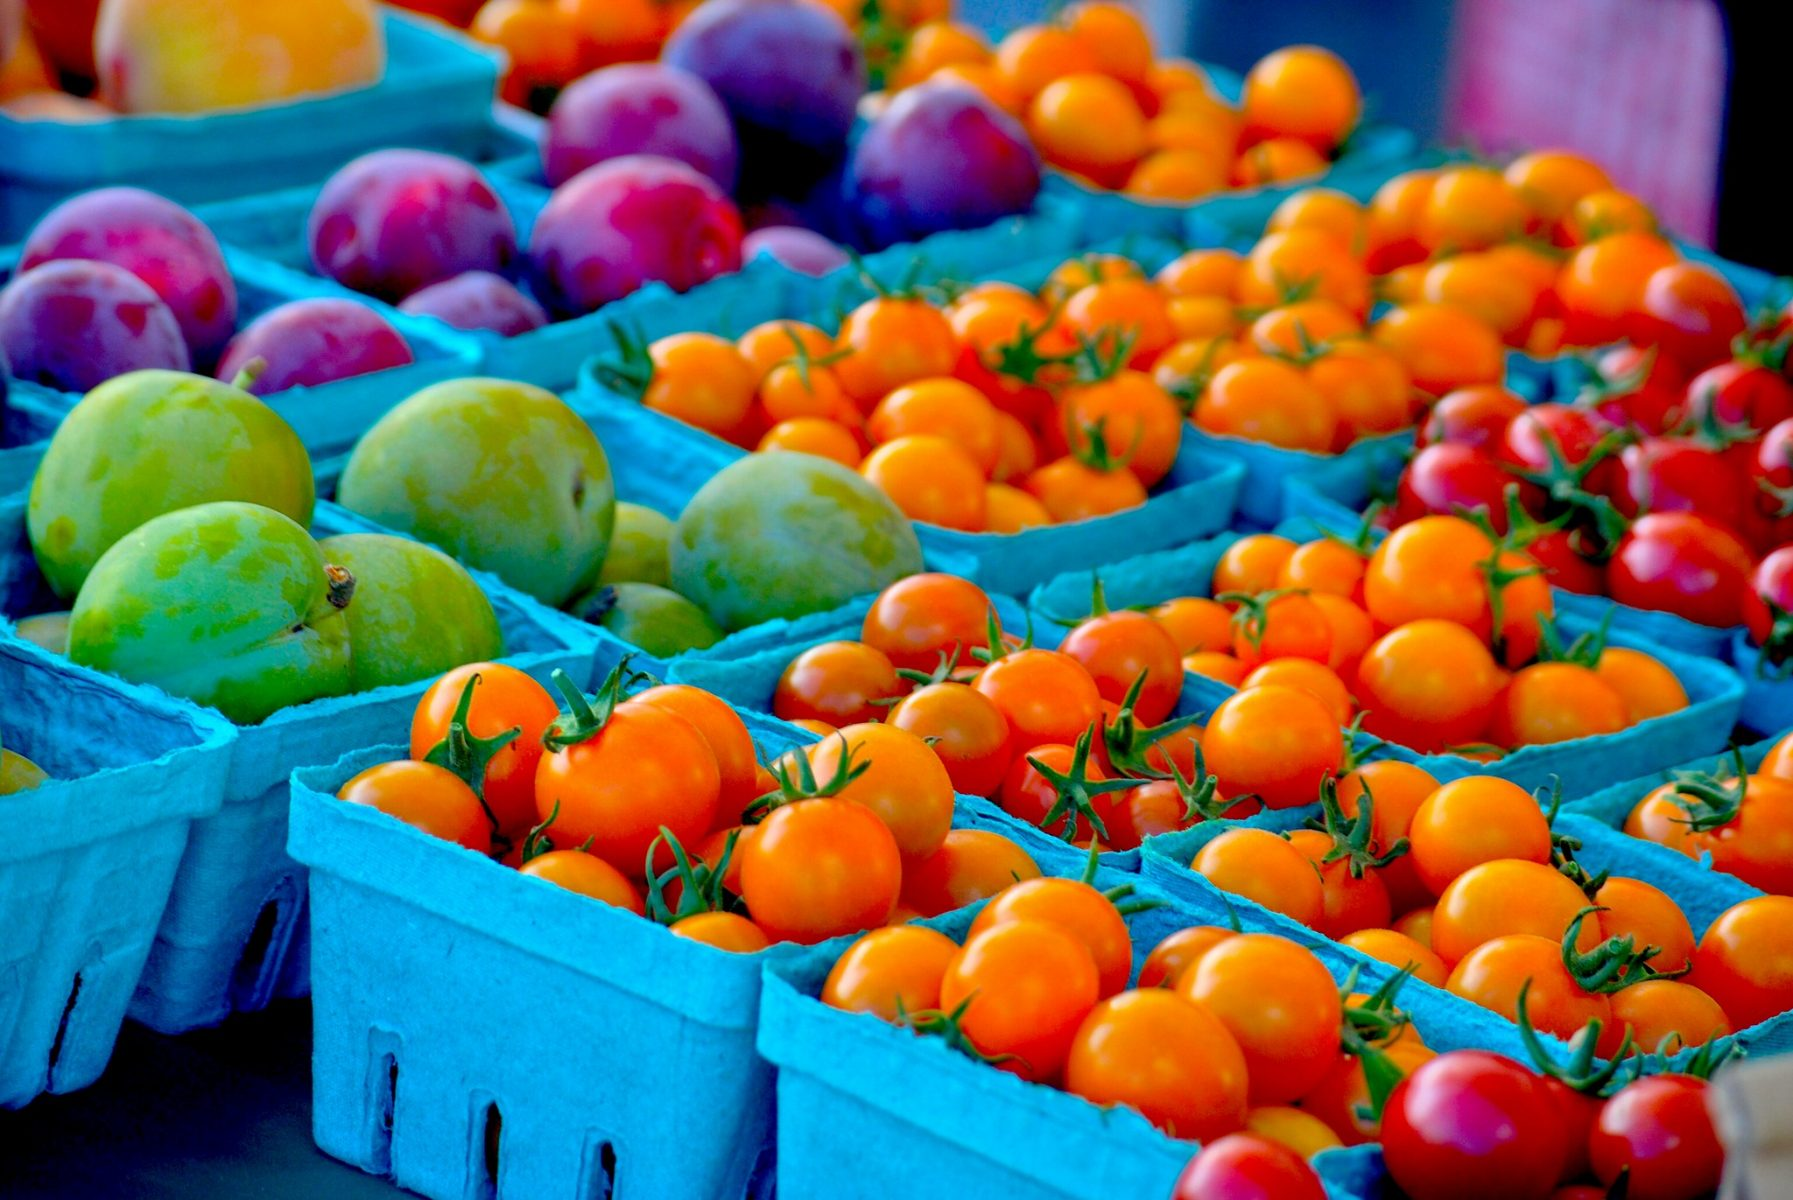 Photo of tomatoes at farm stand